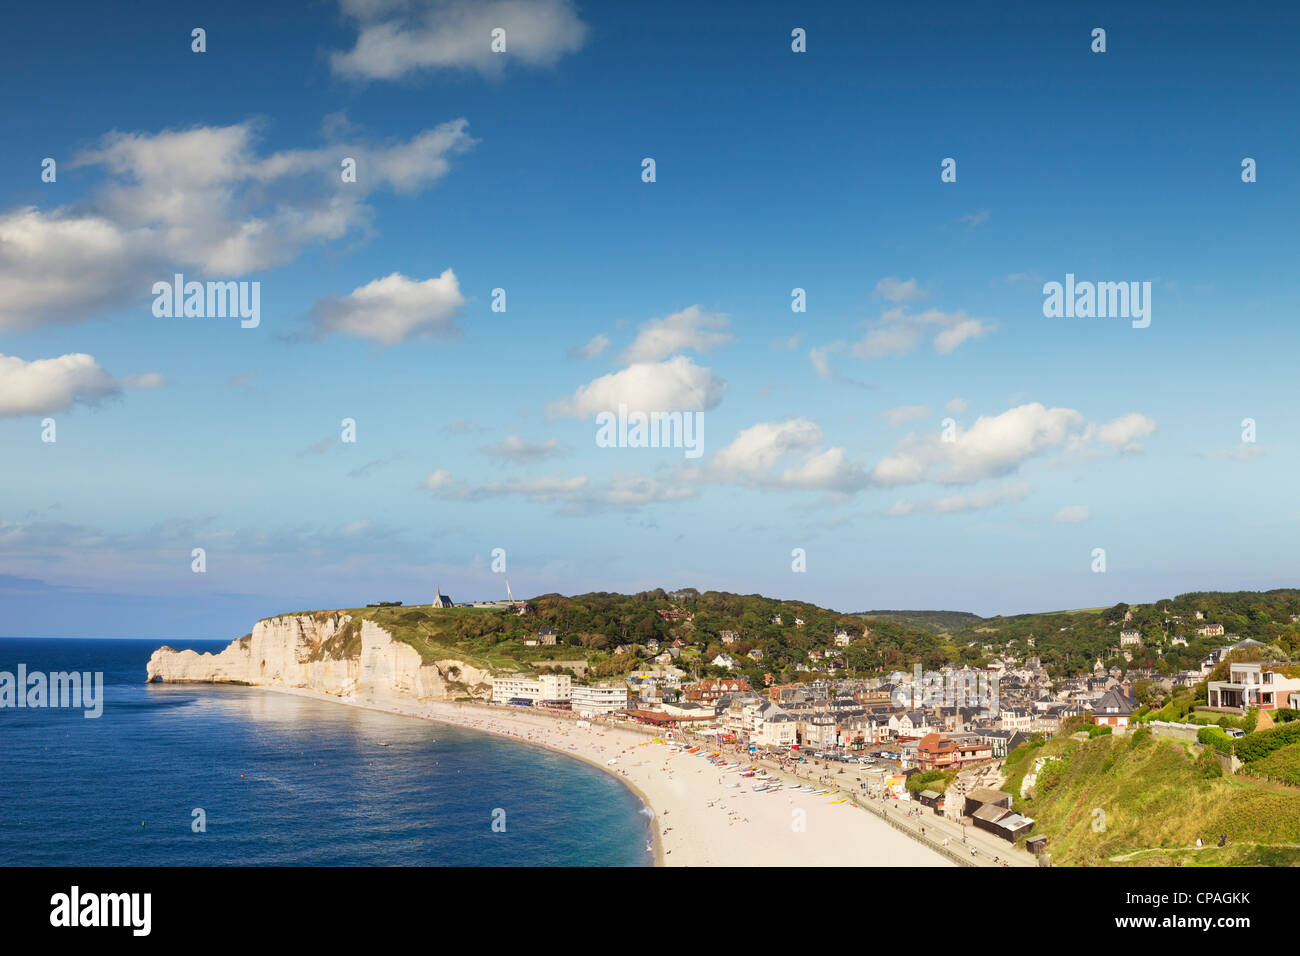 The seaside town of Etretat, Normandy, France, with its beach and chalk cliffs. - Stock Image